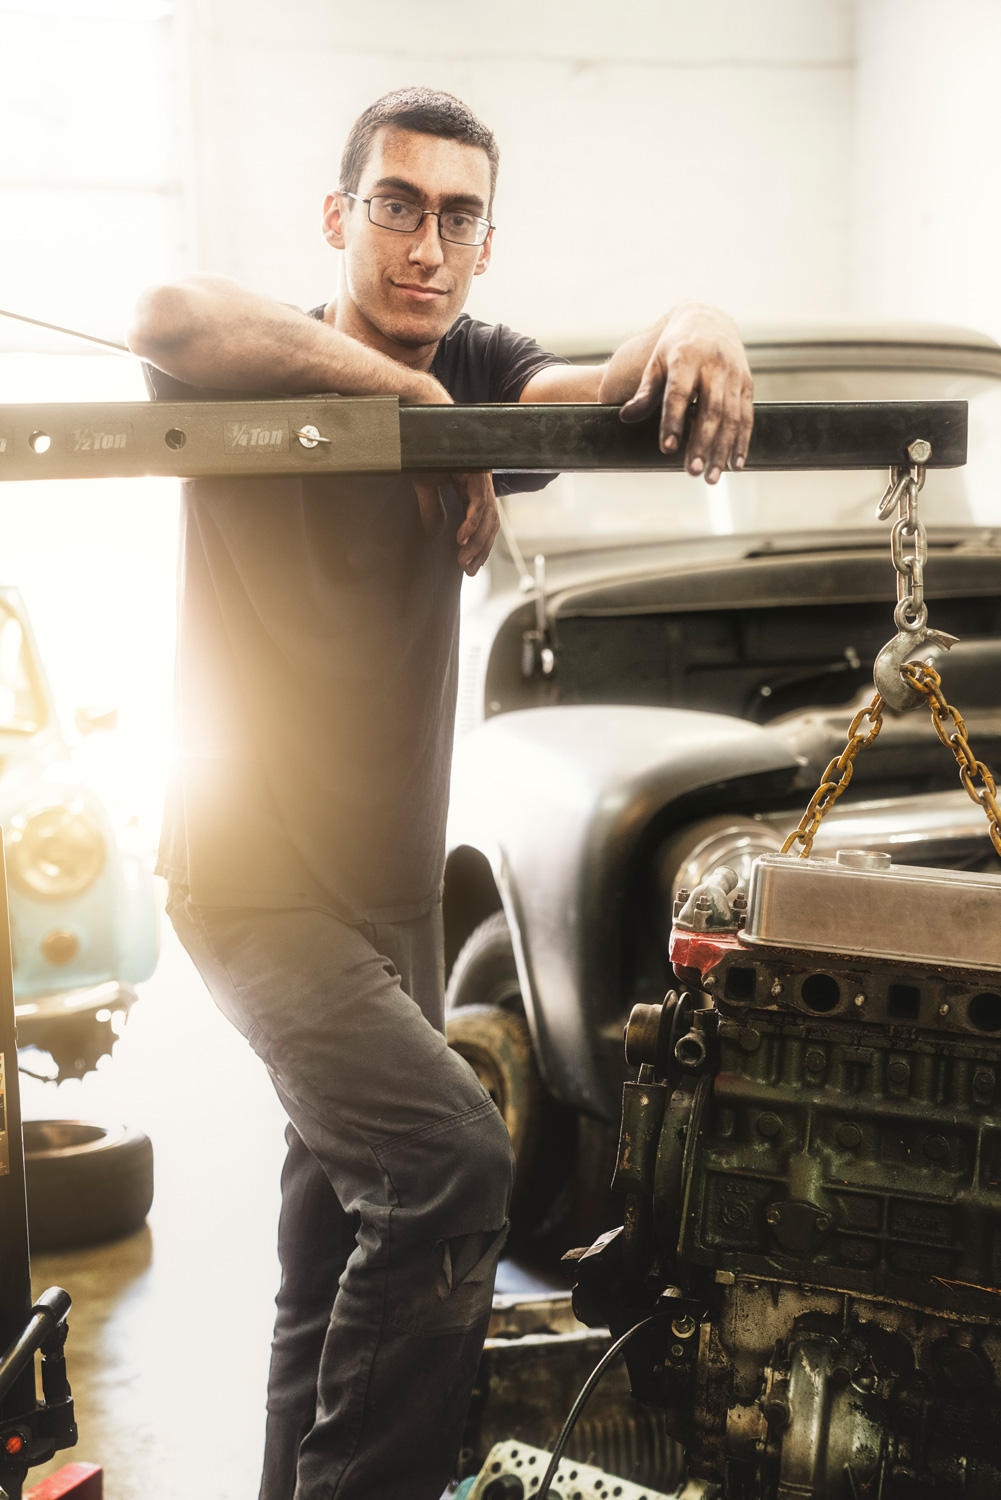 Nate Kulpa saw college as a barrier rather than a pathway to his entrepreneurial goals. Today, his business, Wild Child Classic Cars, is going strong.